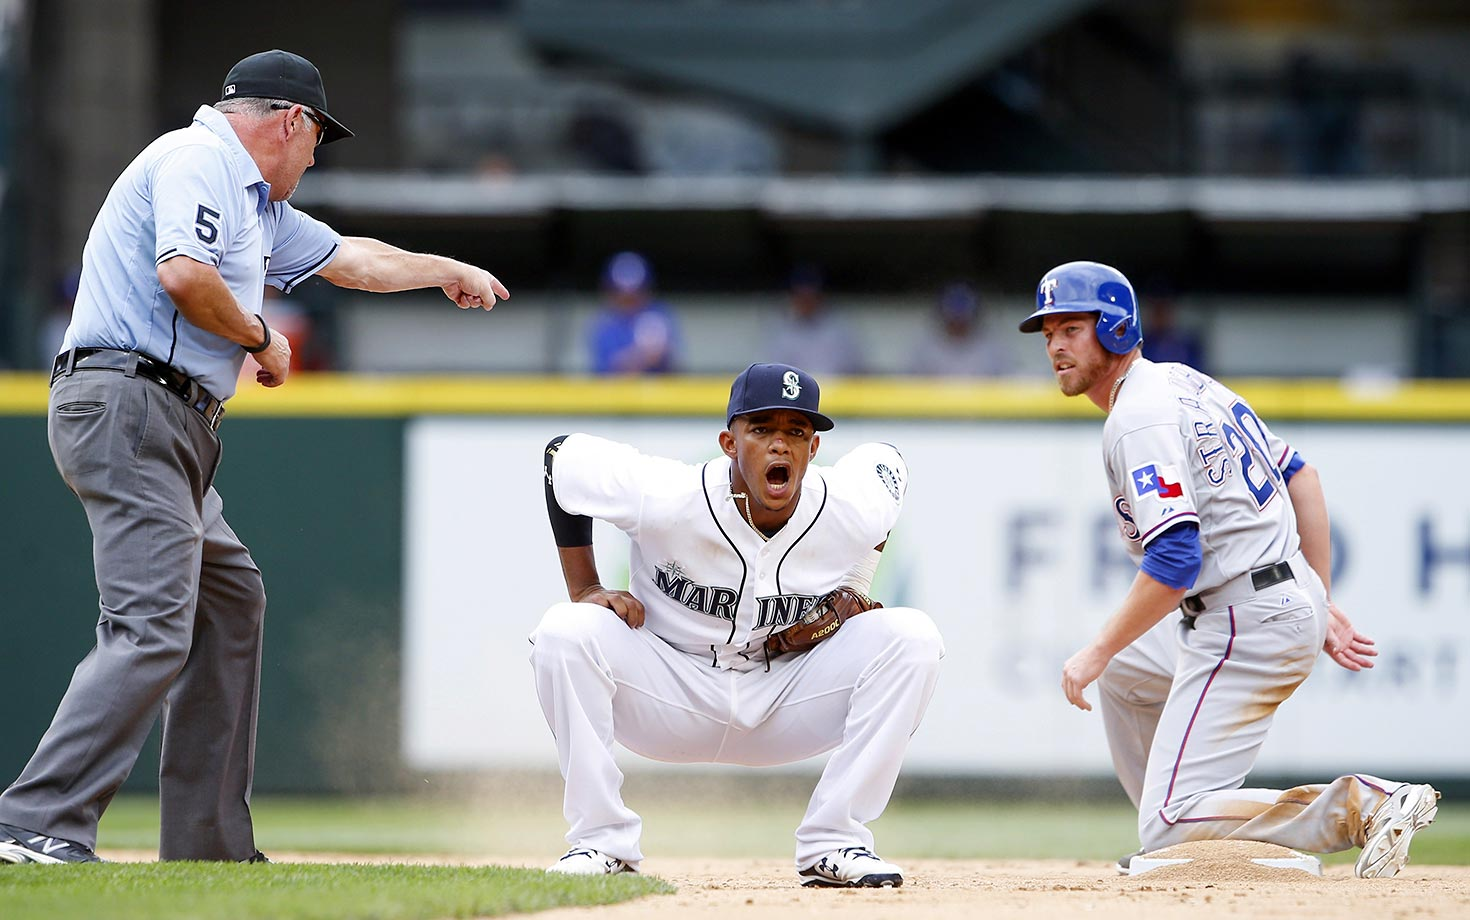 Seattle Mariners shortstop Ketel Marte reacts after missing a double play against Ryan Strausborger of the Texas Rangers.